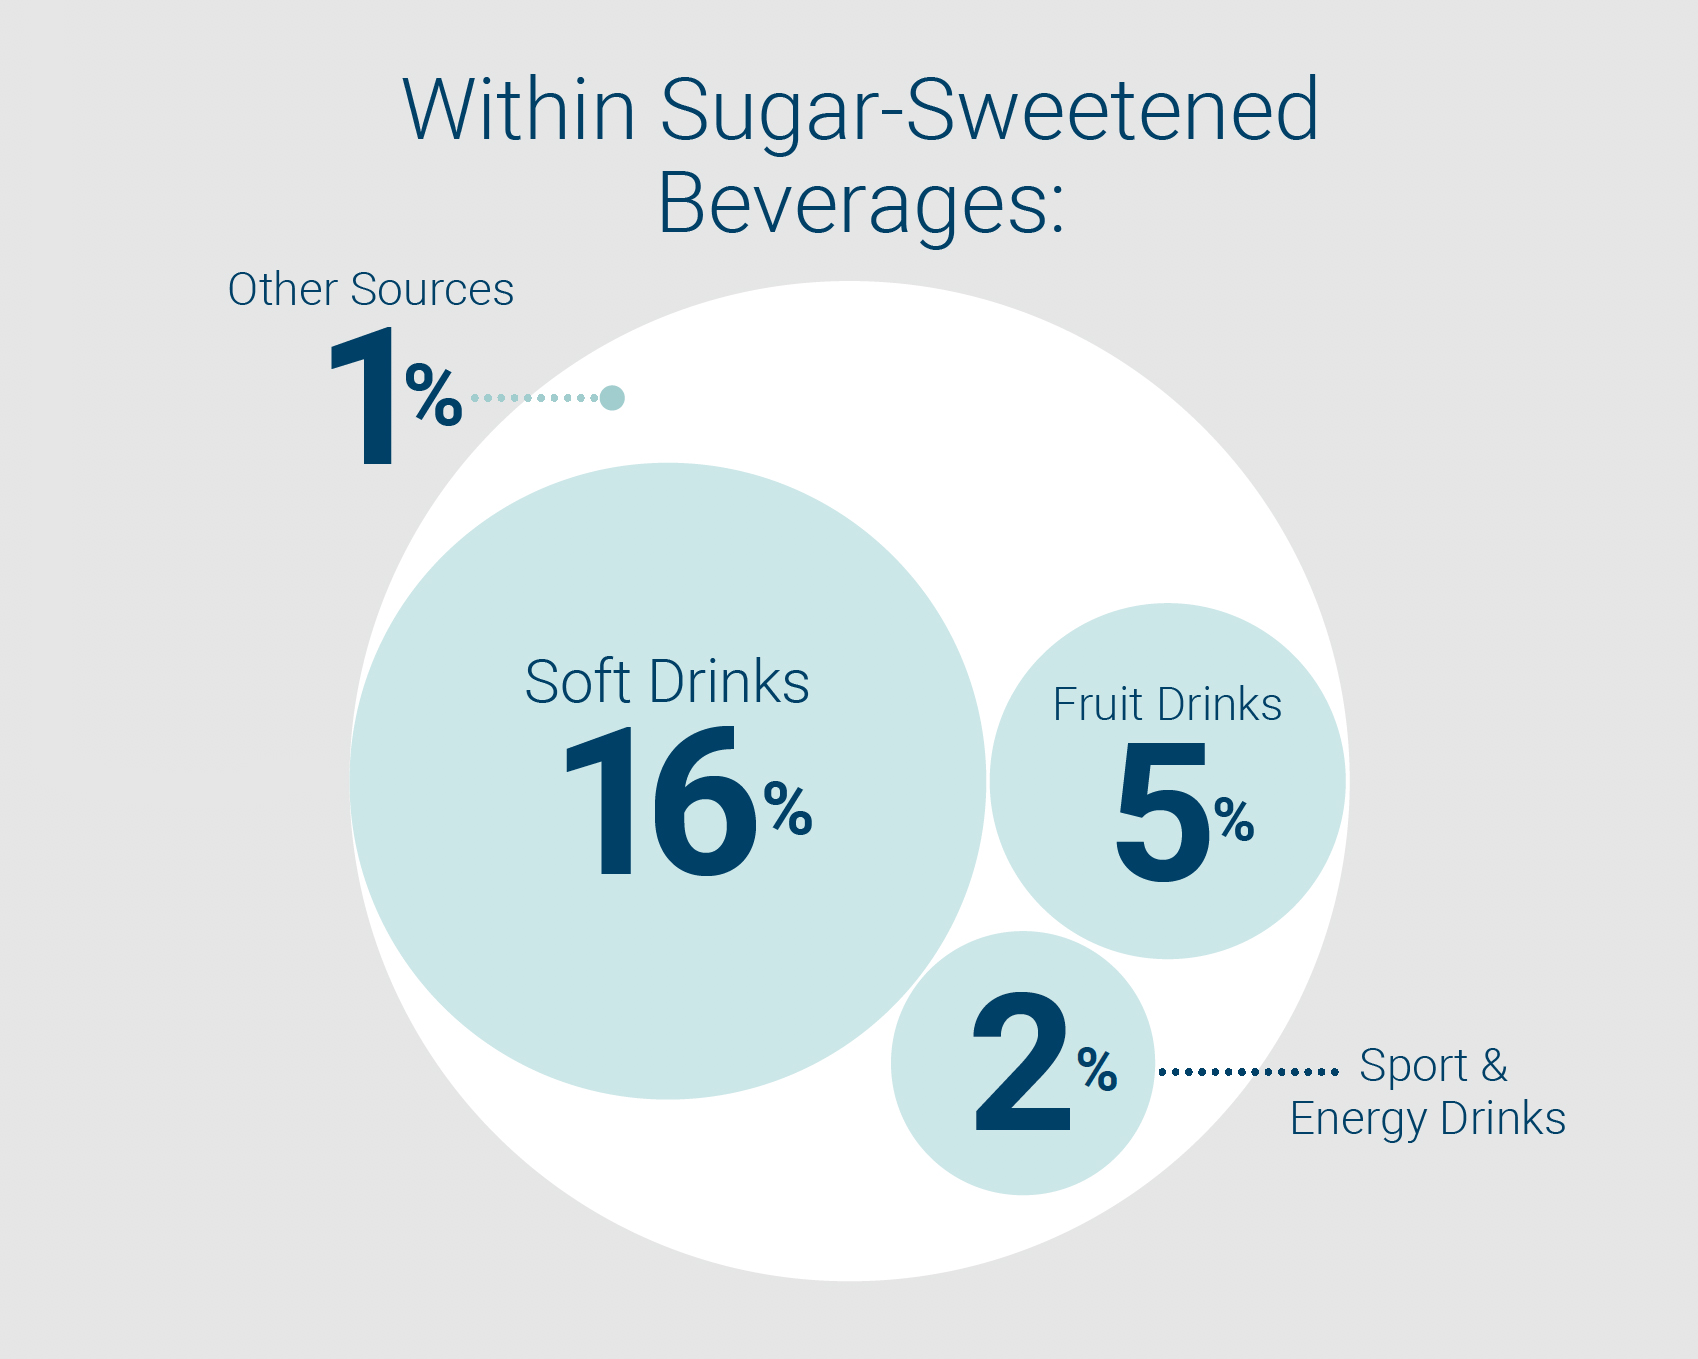 Added Sugars Chart: Within Sugar-Sweetened Beverages